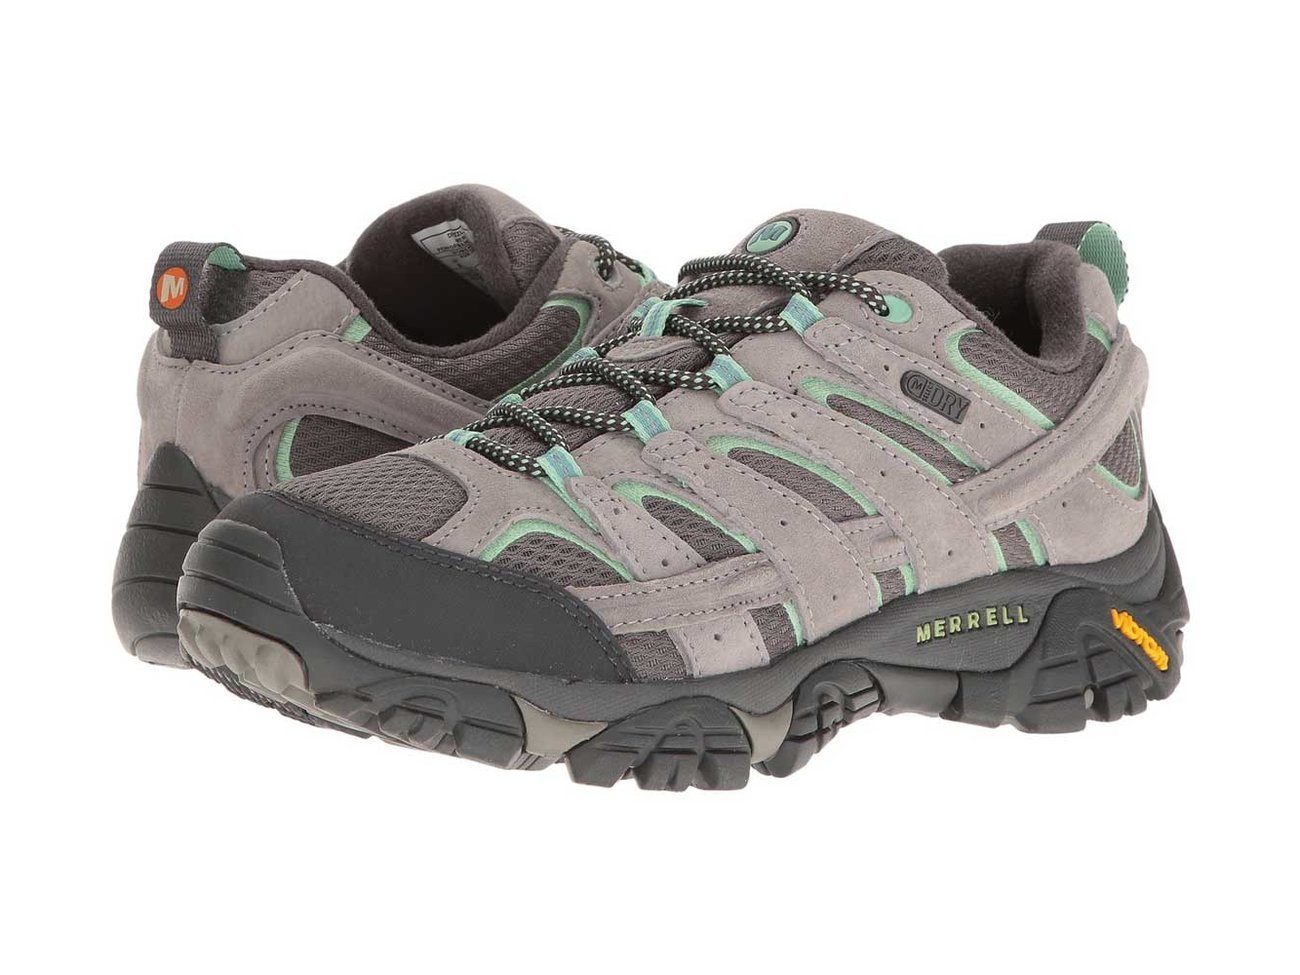 46d9cd4b22f Best for Muddy or Wet Trails  Merrell Moab 2 Waterproof Hiking Shoe